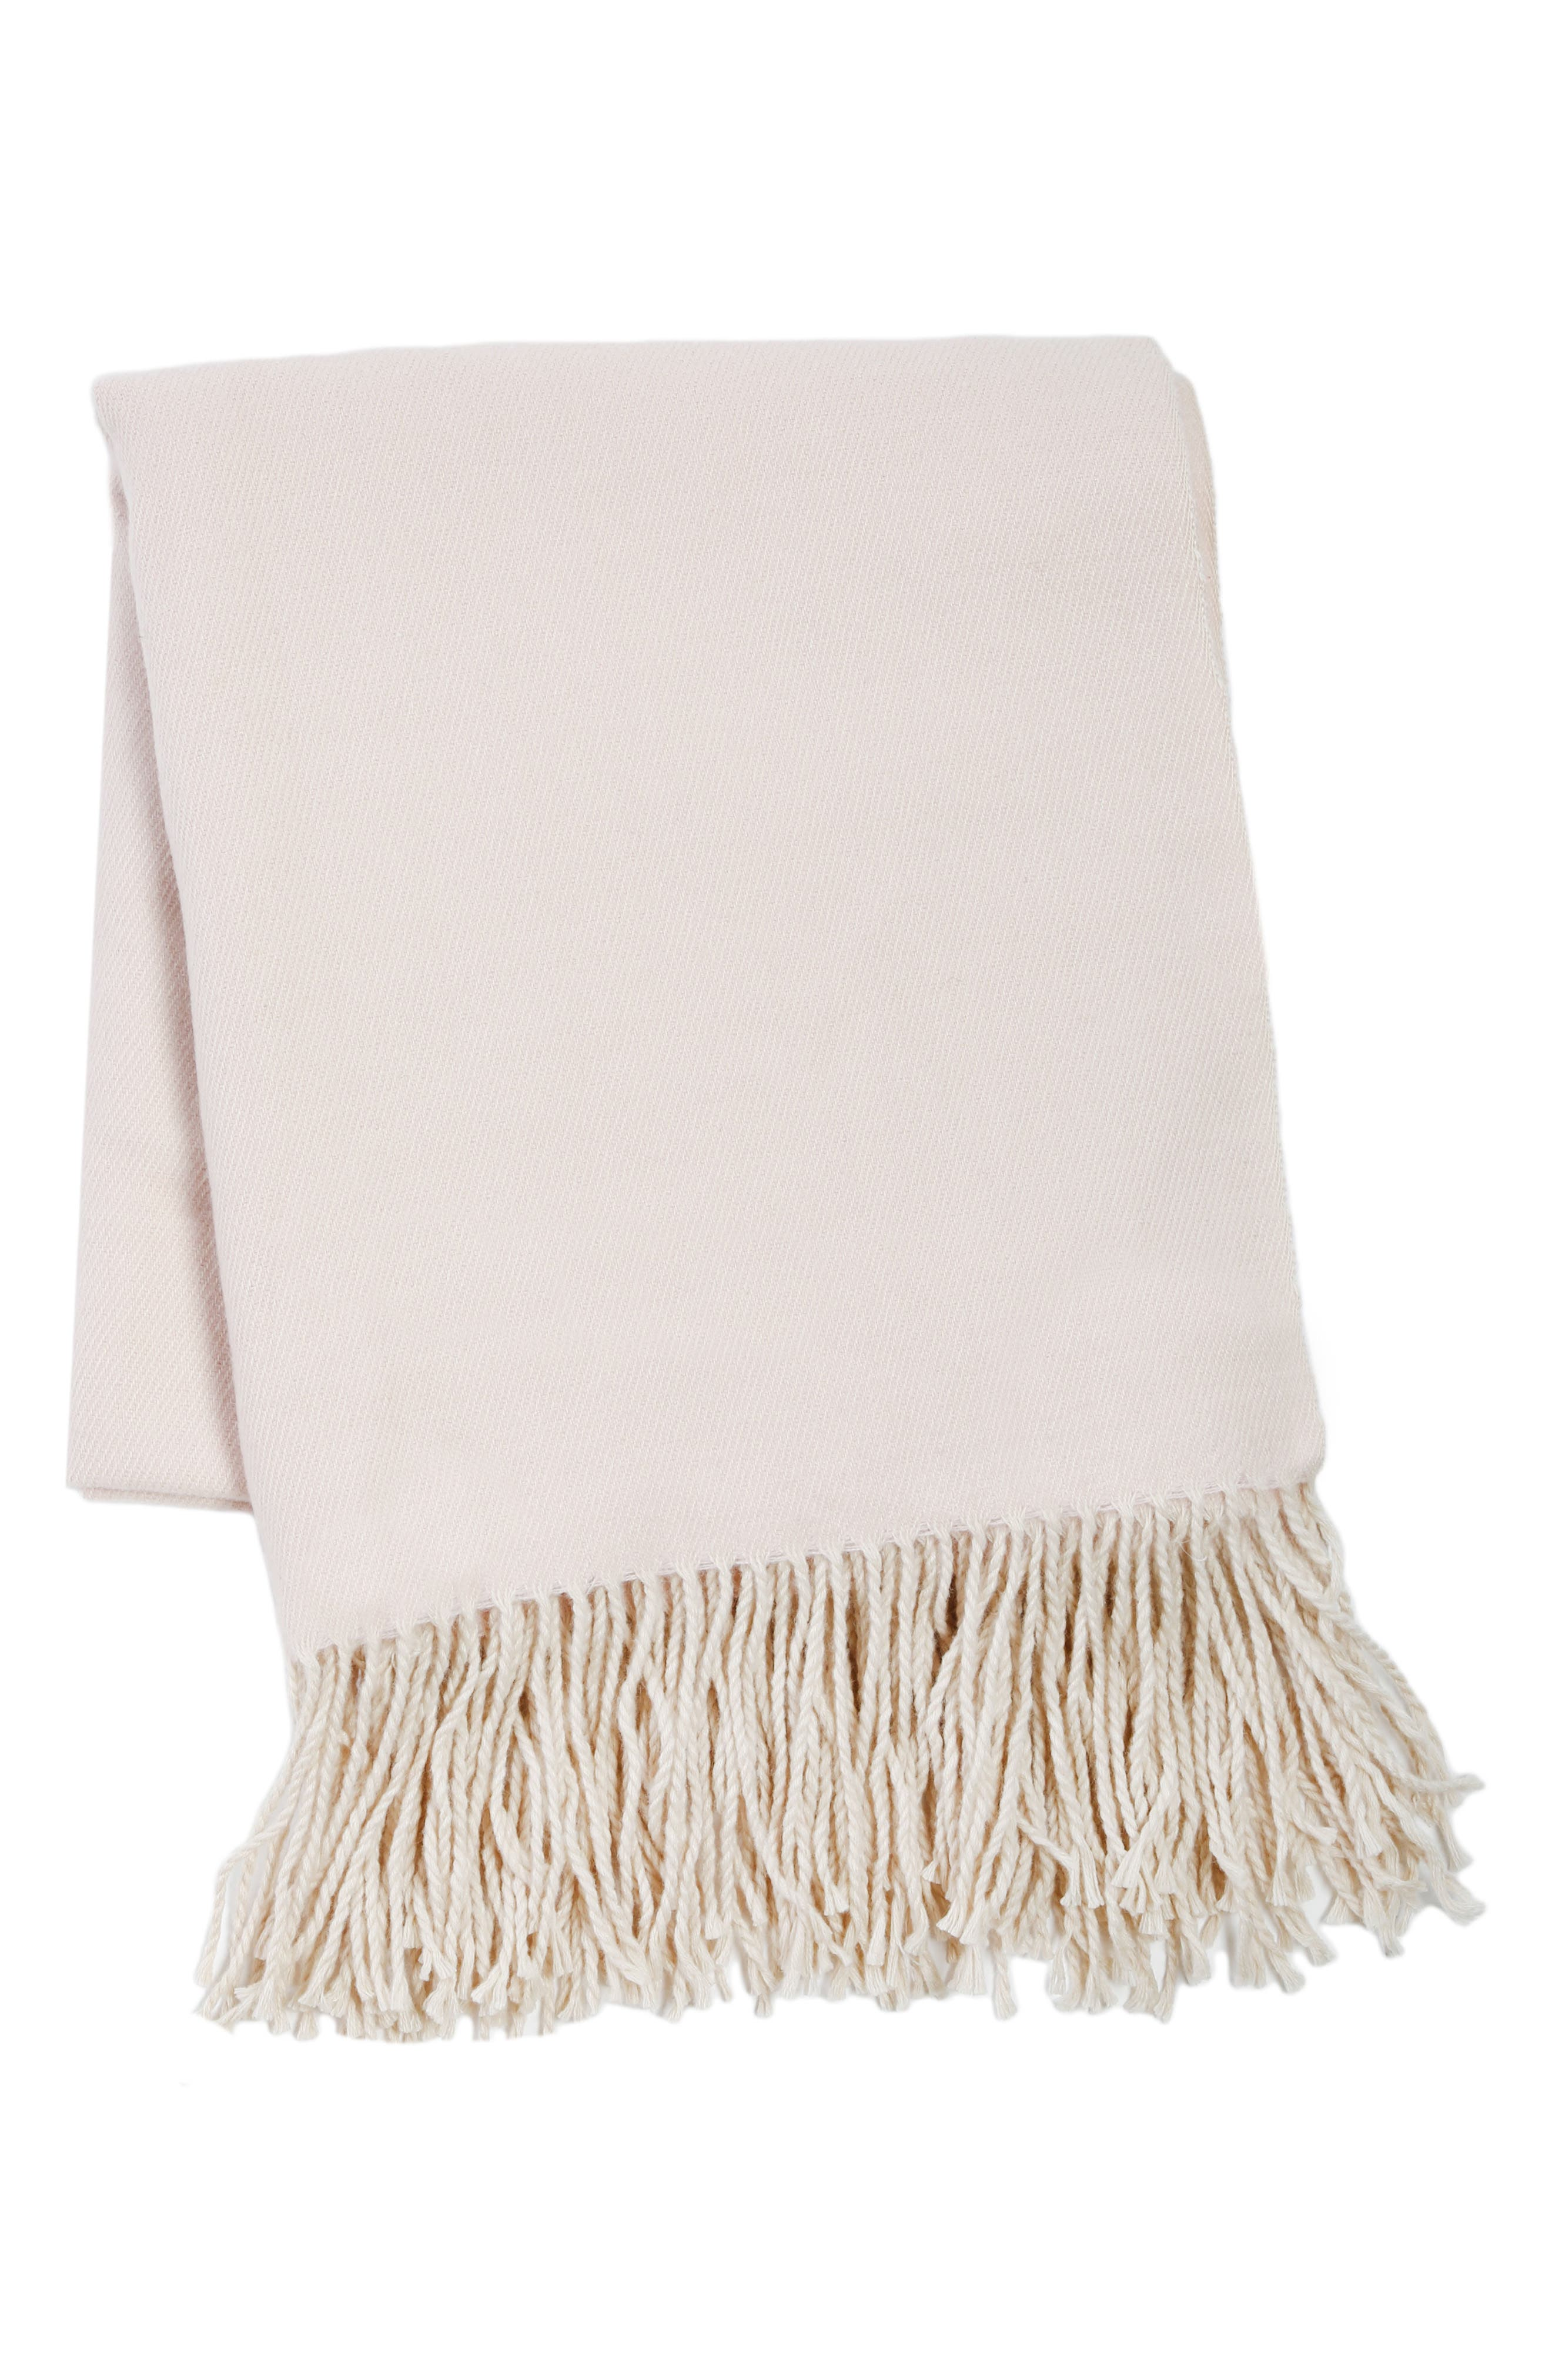 Fringe trim furthers the casual sophistication of a lightweight throw that coordinates with a wide range of decor. Style Name: Pom Pom At Home Morgan Throw. Style Number: 5629260. Available in stores.